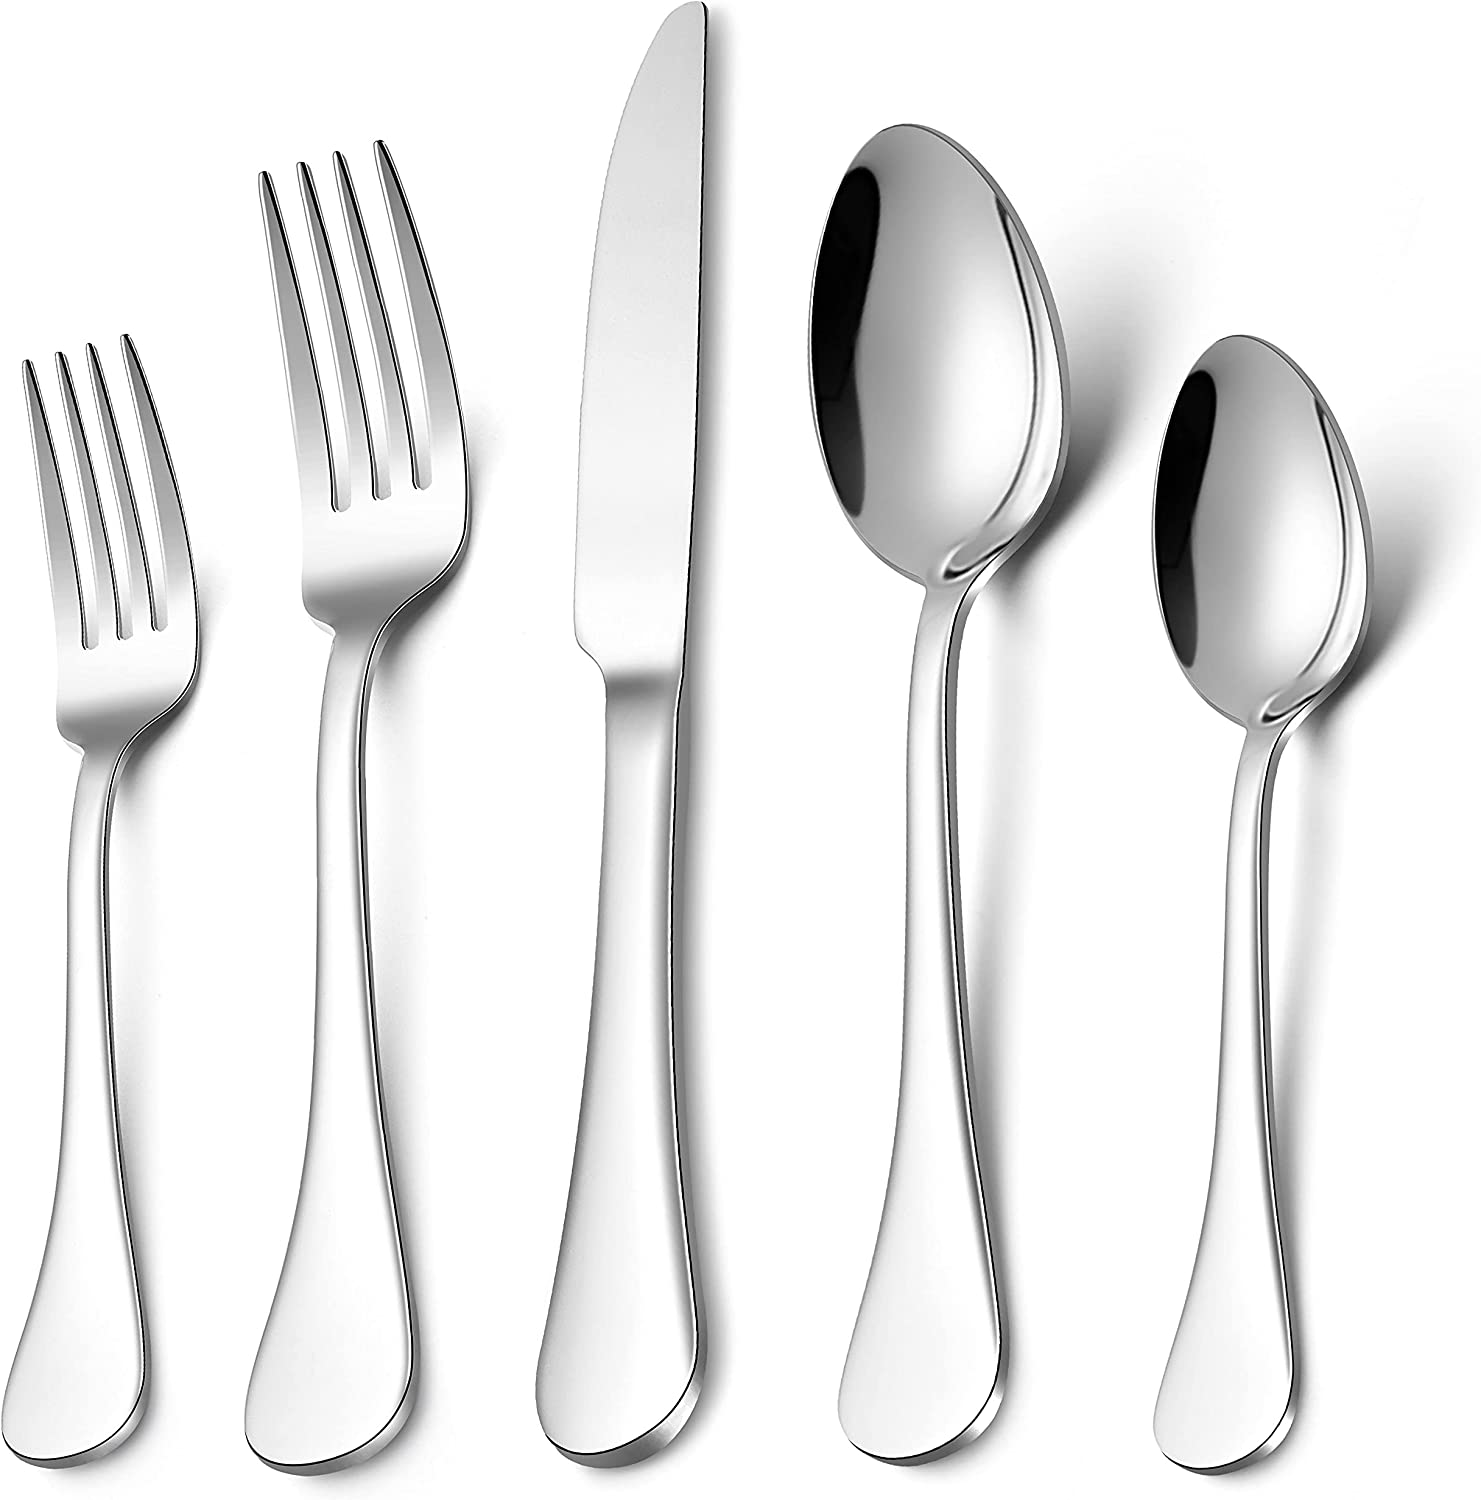 LIANYU 40-Piece 18 10 safety Flatware Steel Stainless Super Special SALE held Set Silver Fancy